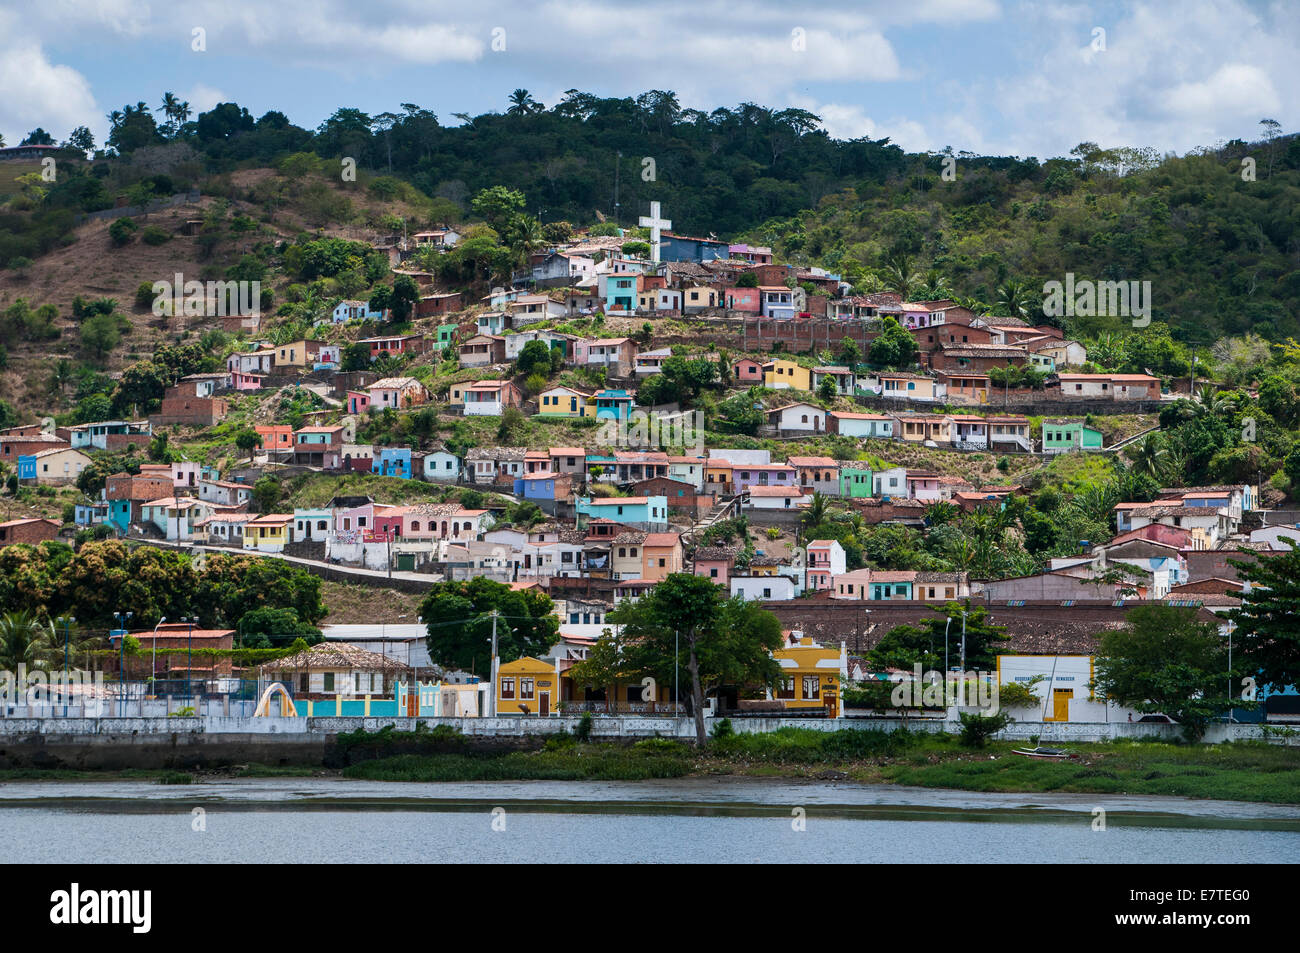 Townscape with colourful houses, Cachoeira, Bahia, Brazil - Stock Image